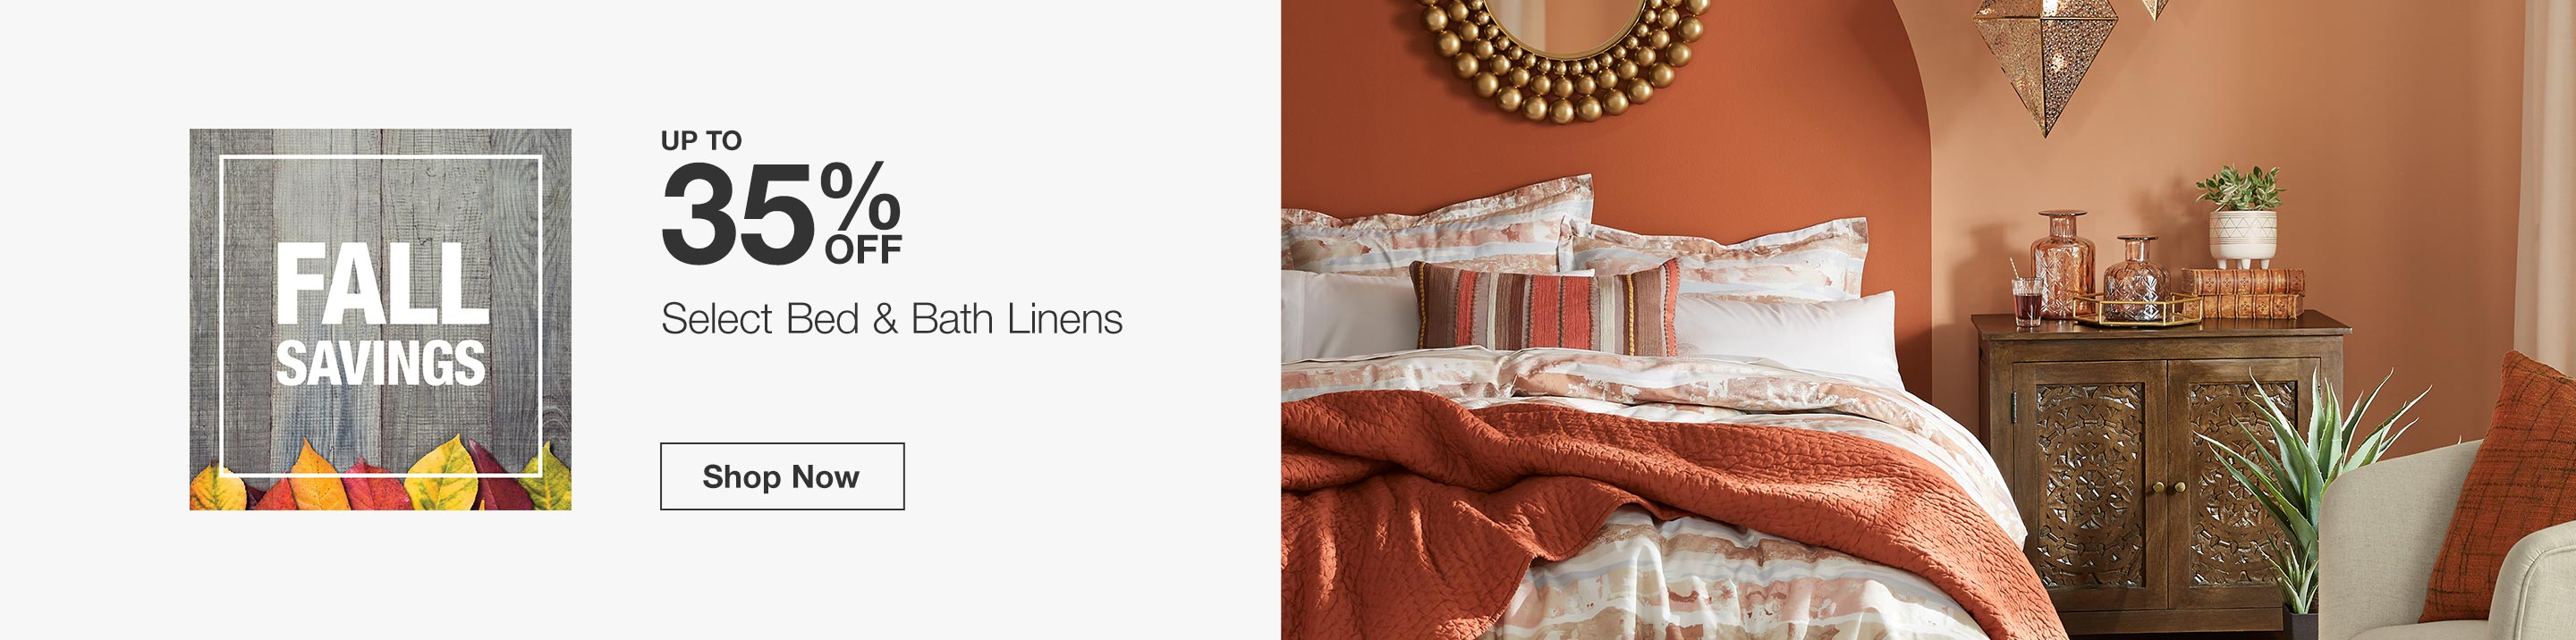 Up to 35% Off Select Bed and Bath Linens